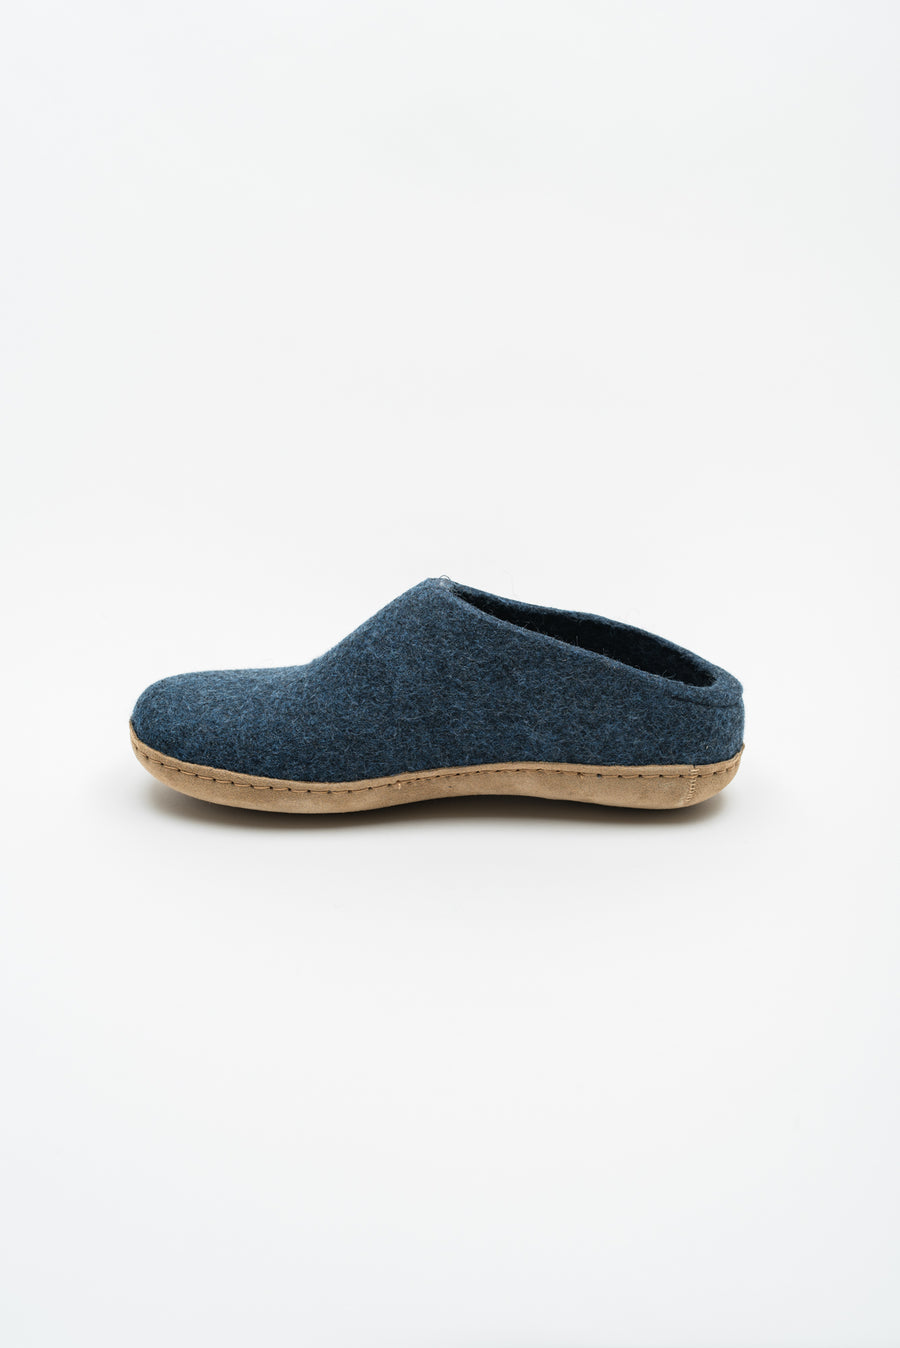 Open Heel Slipper - Denim